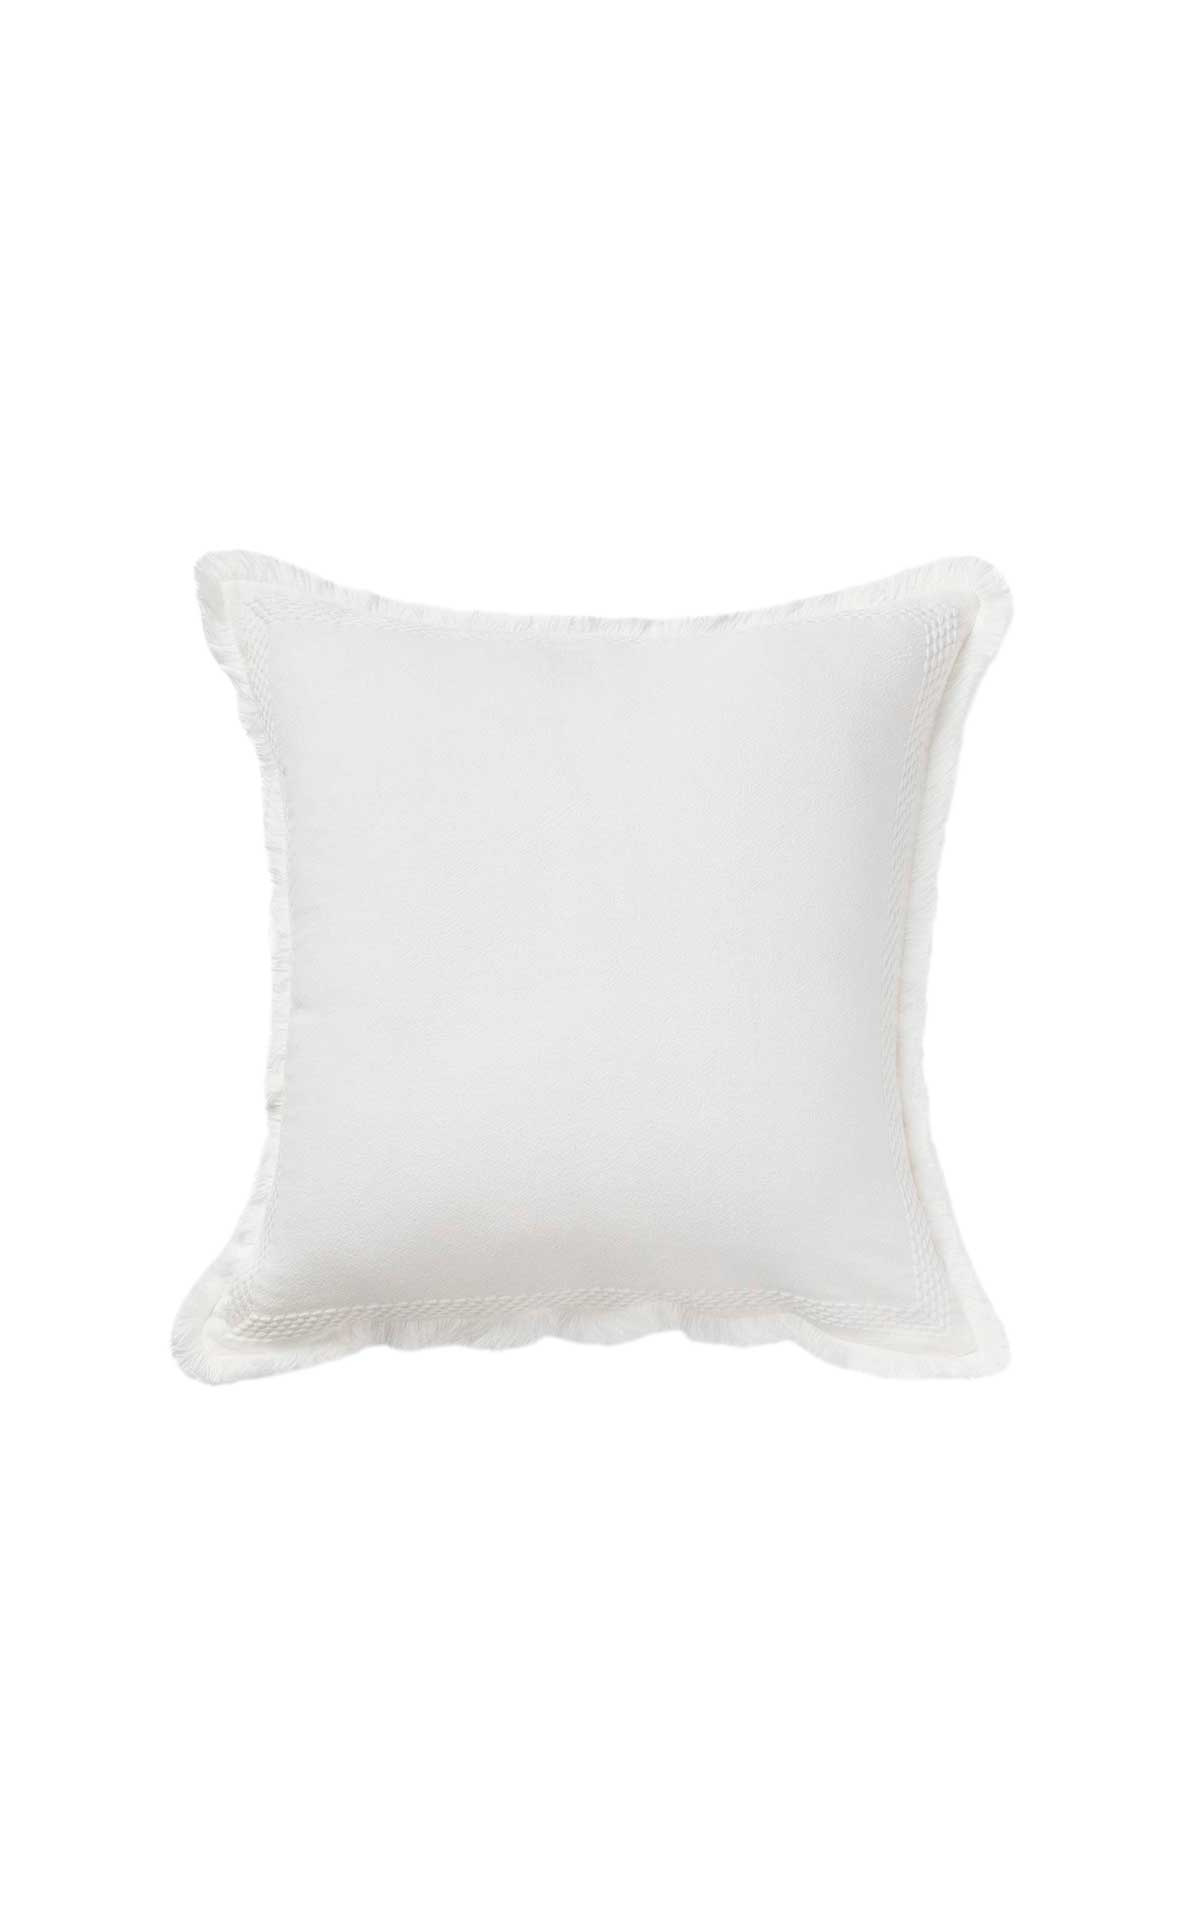 White cushion cover Textura